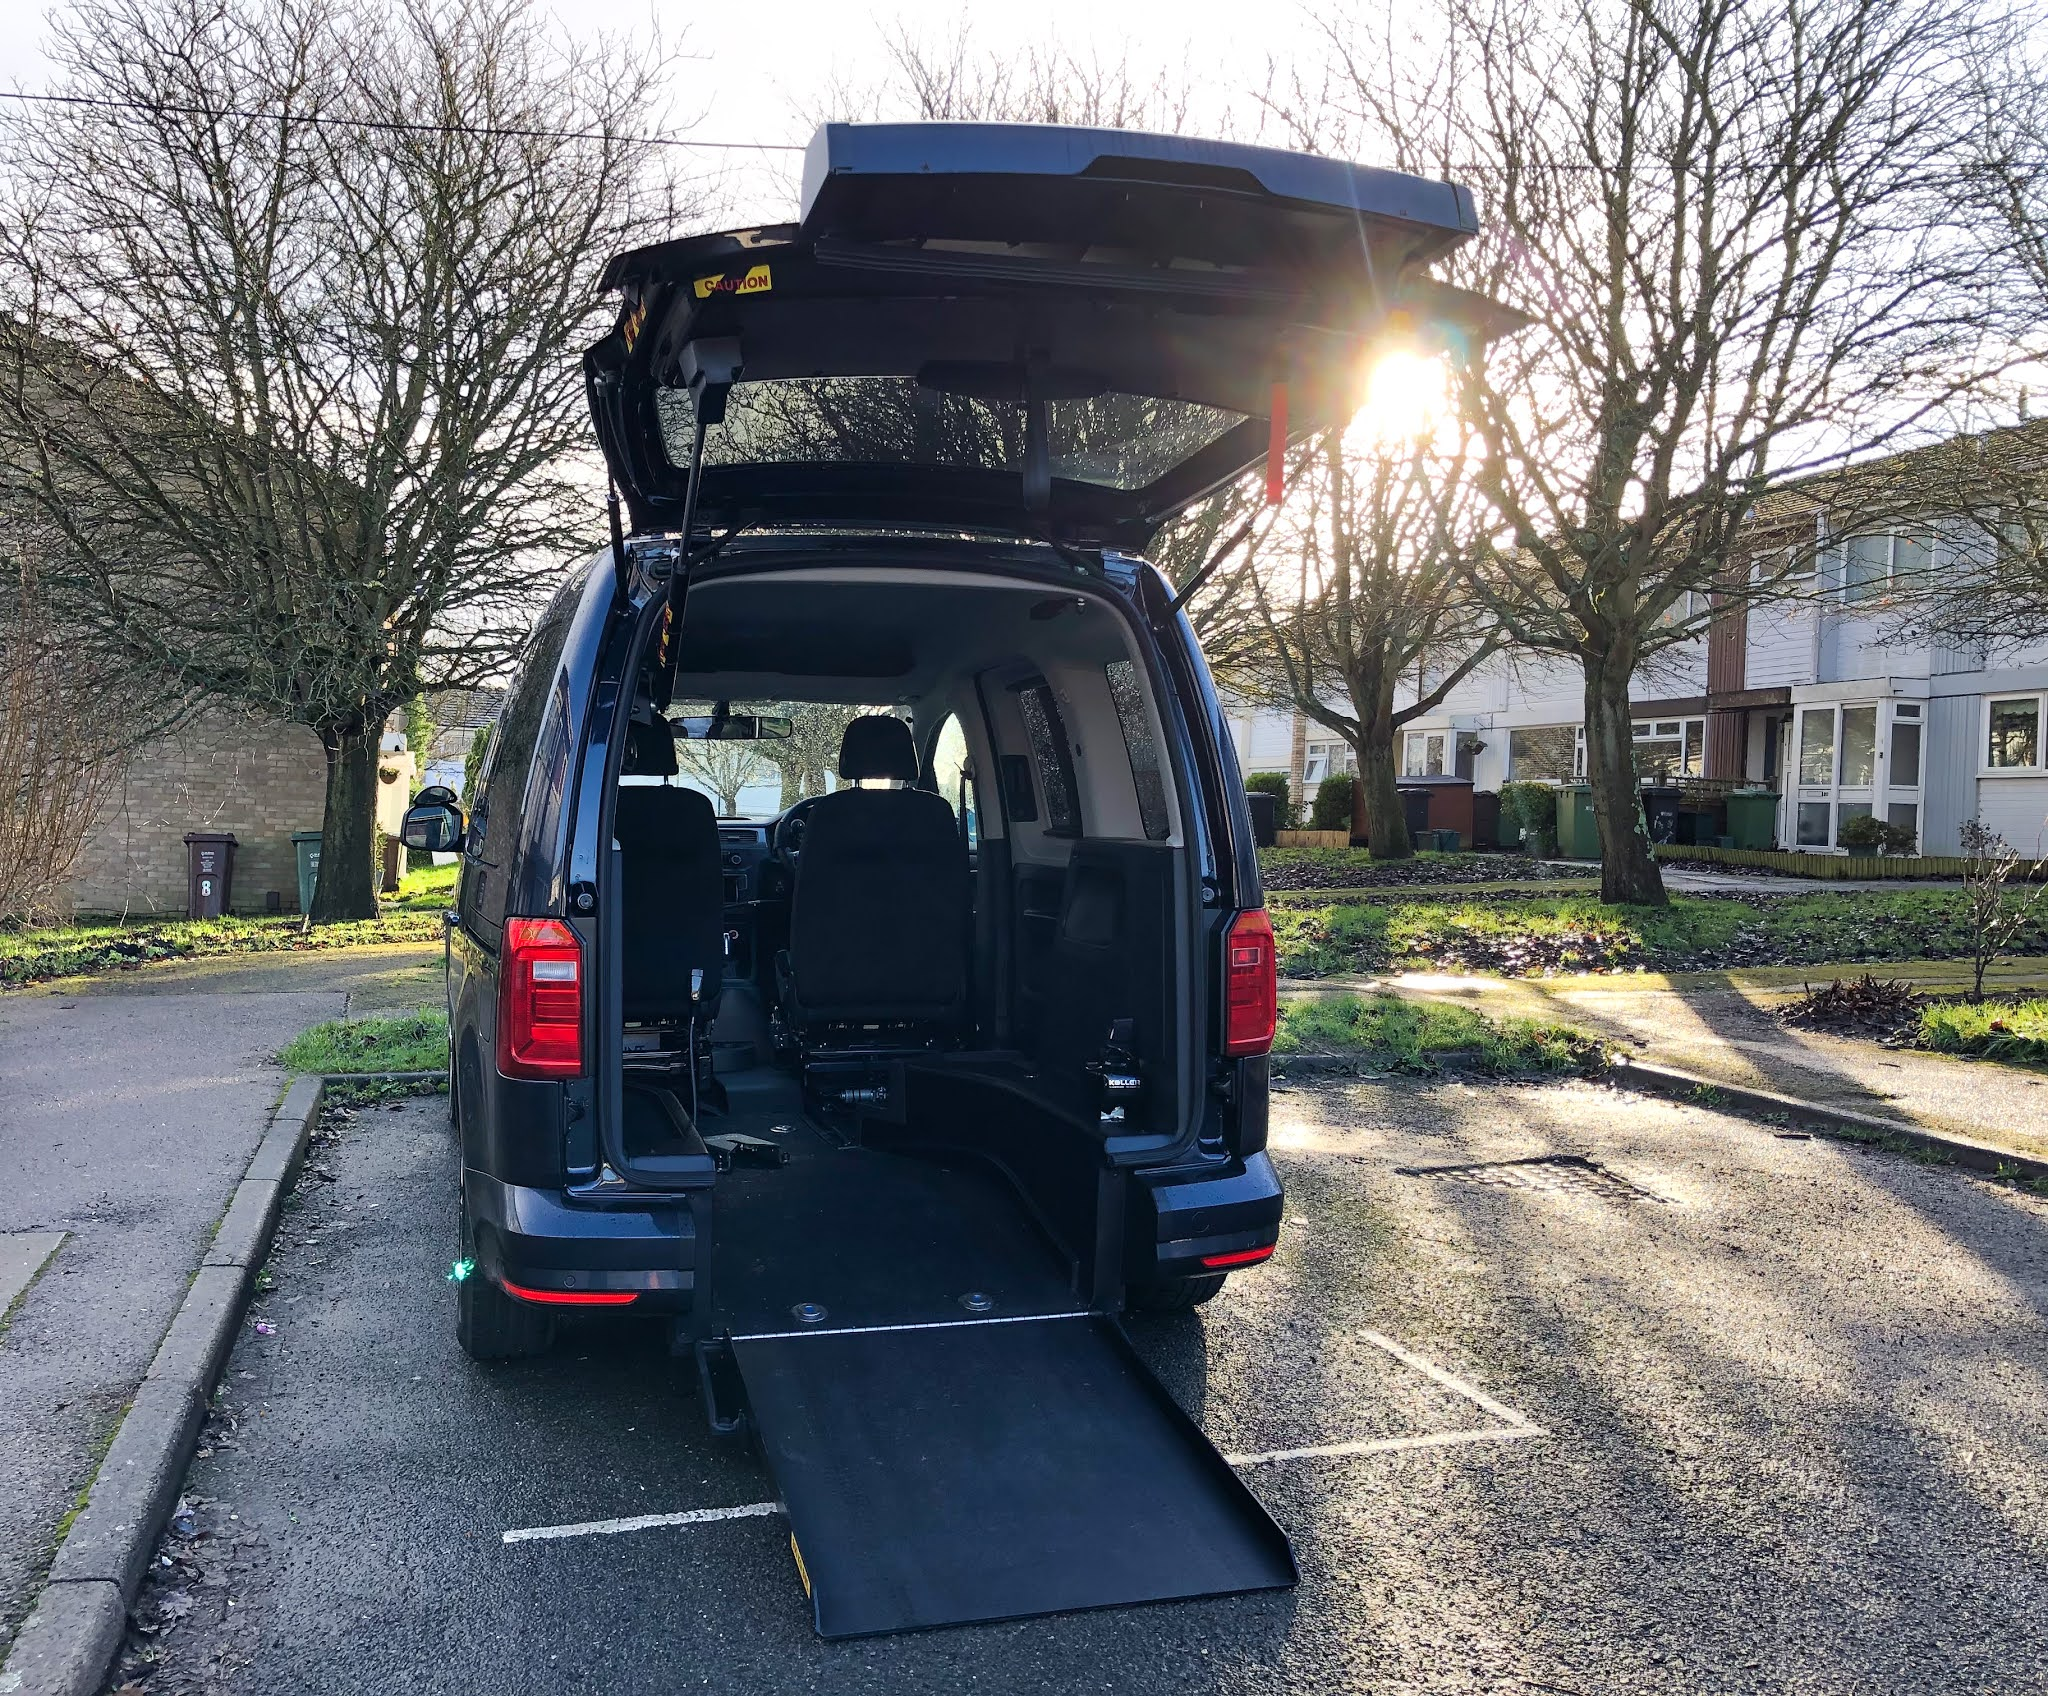 A midsize wheelchair accessible vehicle has it's boot opened and ramp extended.